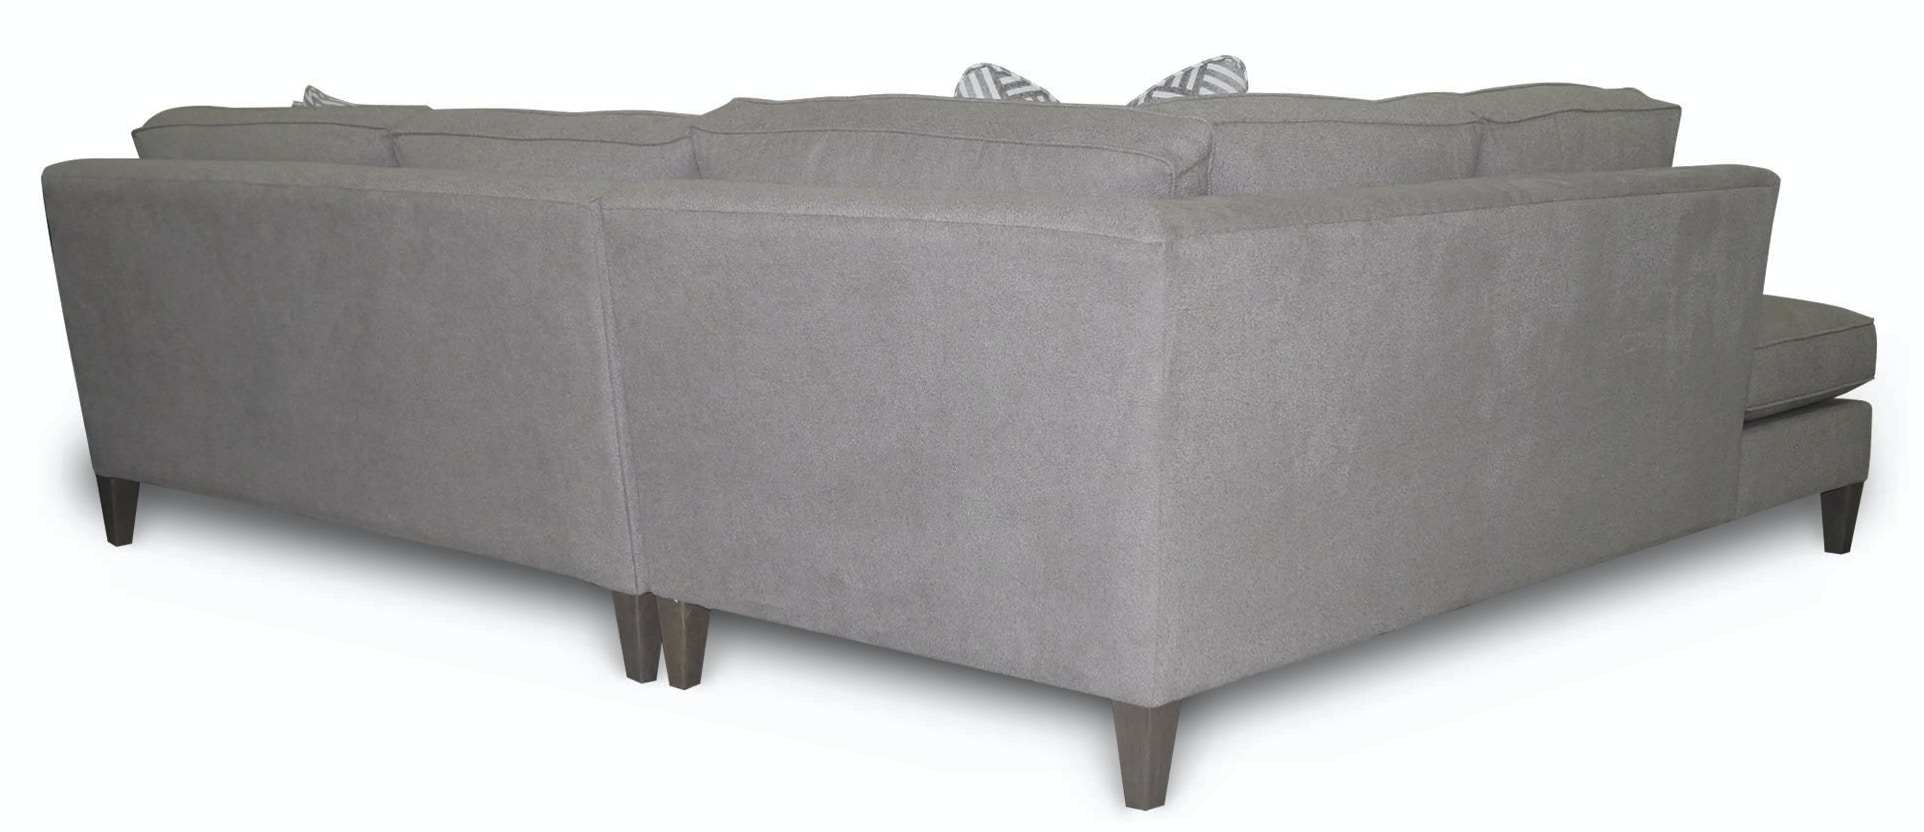 Stanford 2 Piece Sofa Chaise (LAF) KT:88955